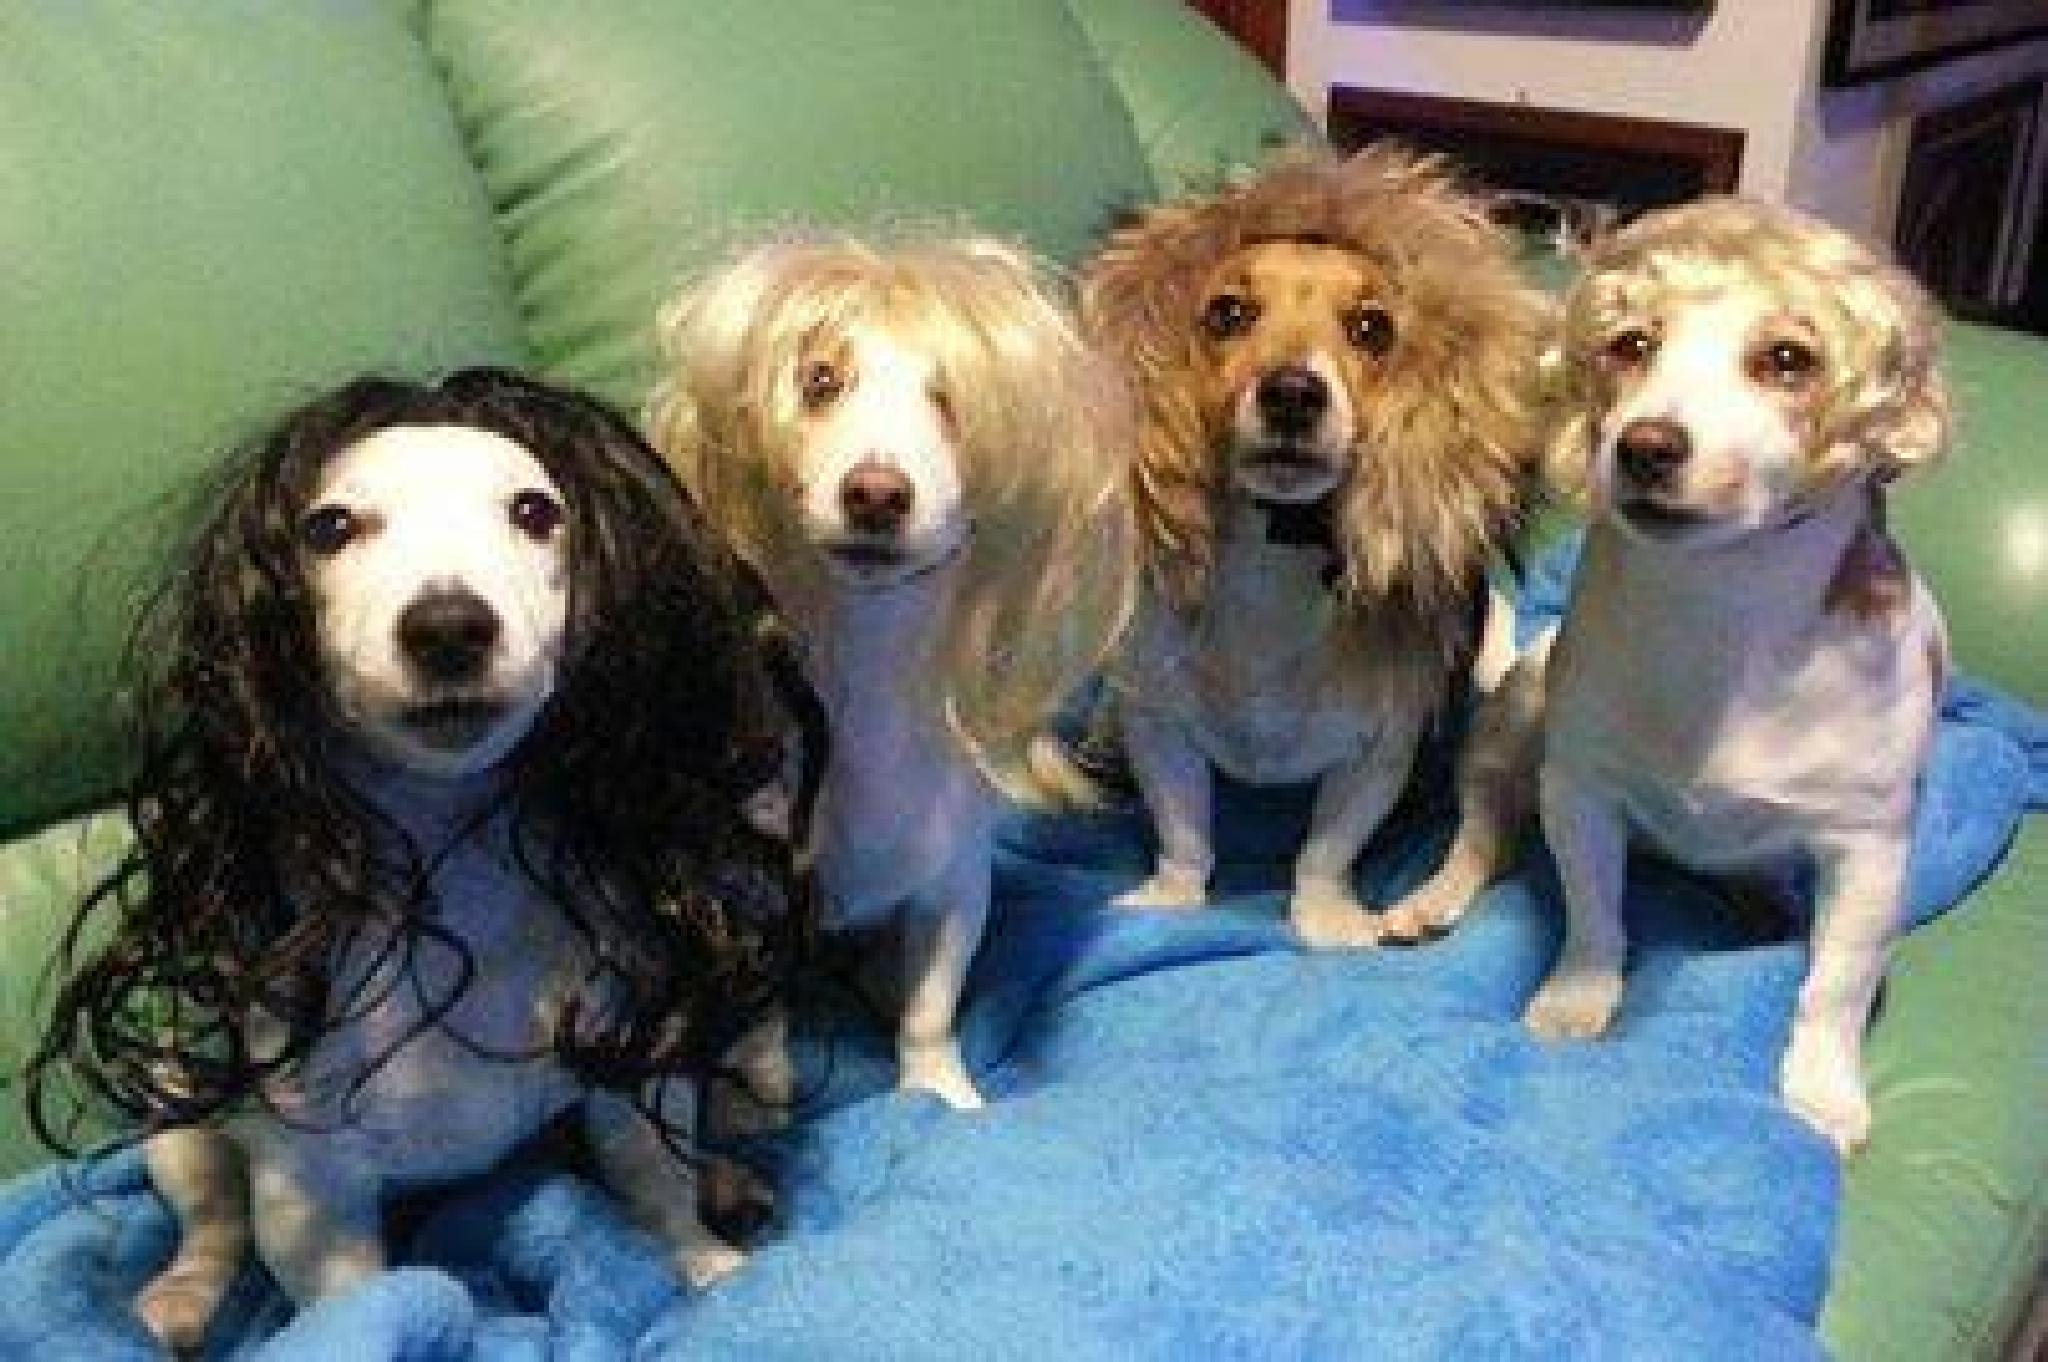 Jack Russell Terriers in Wigs by susan.bailey.1